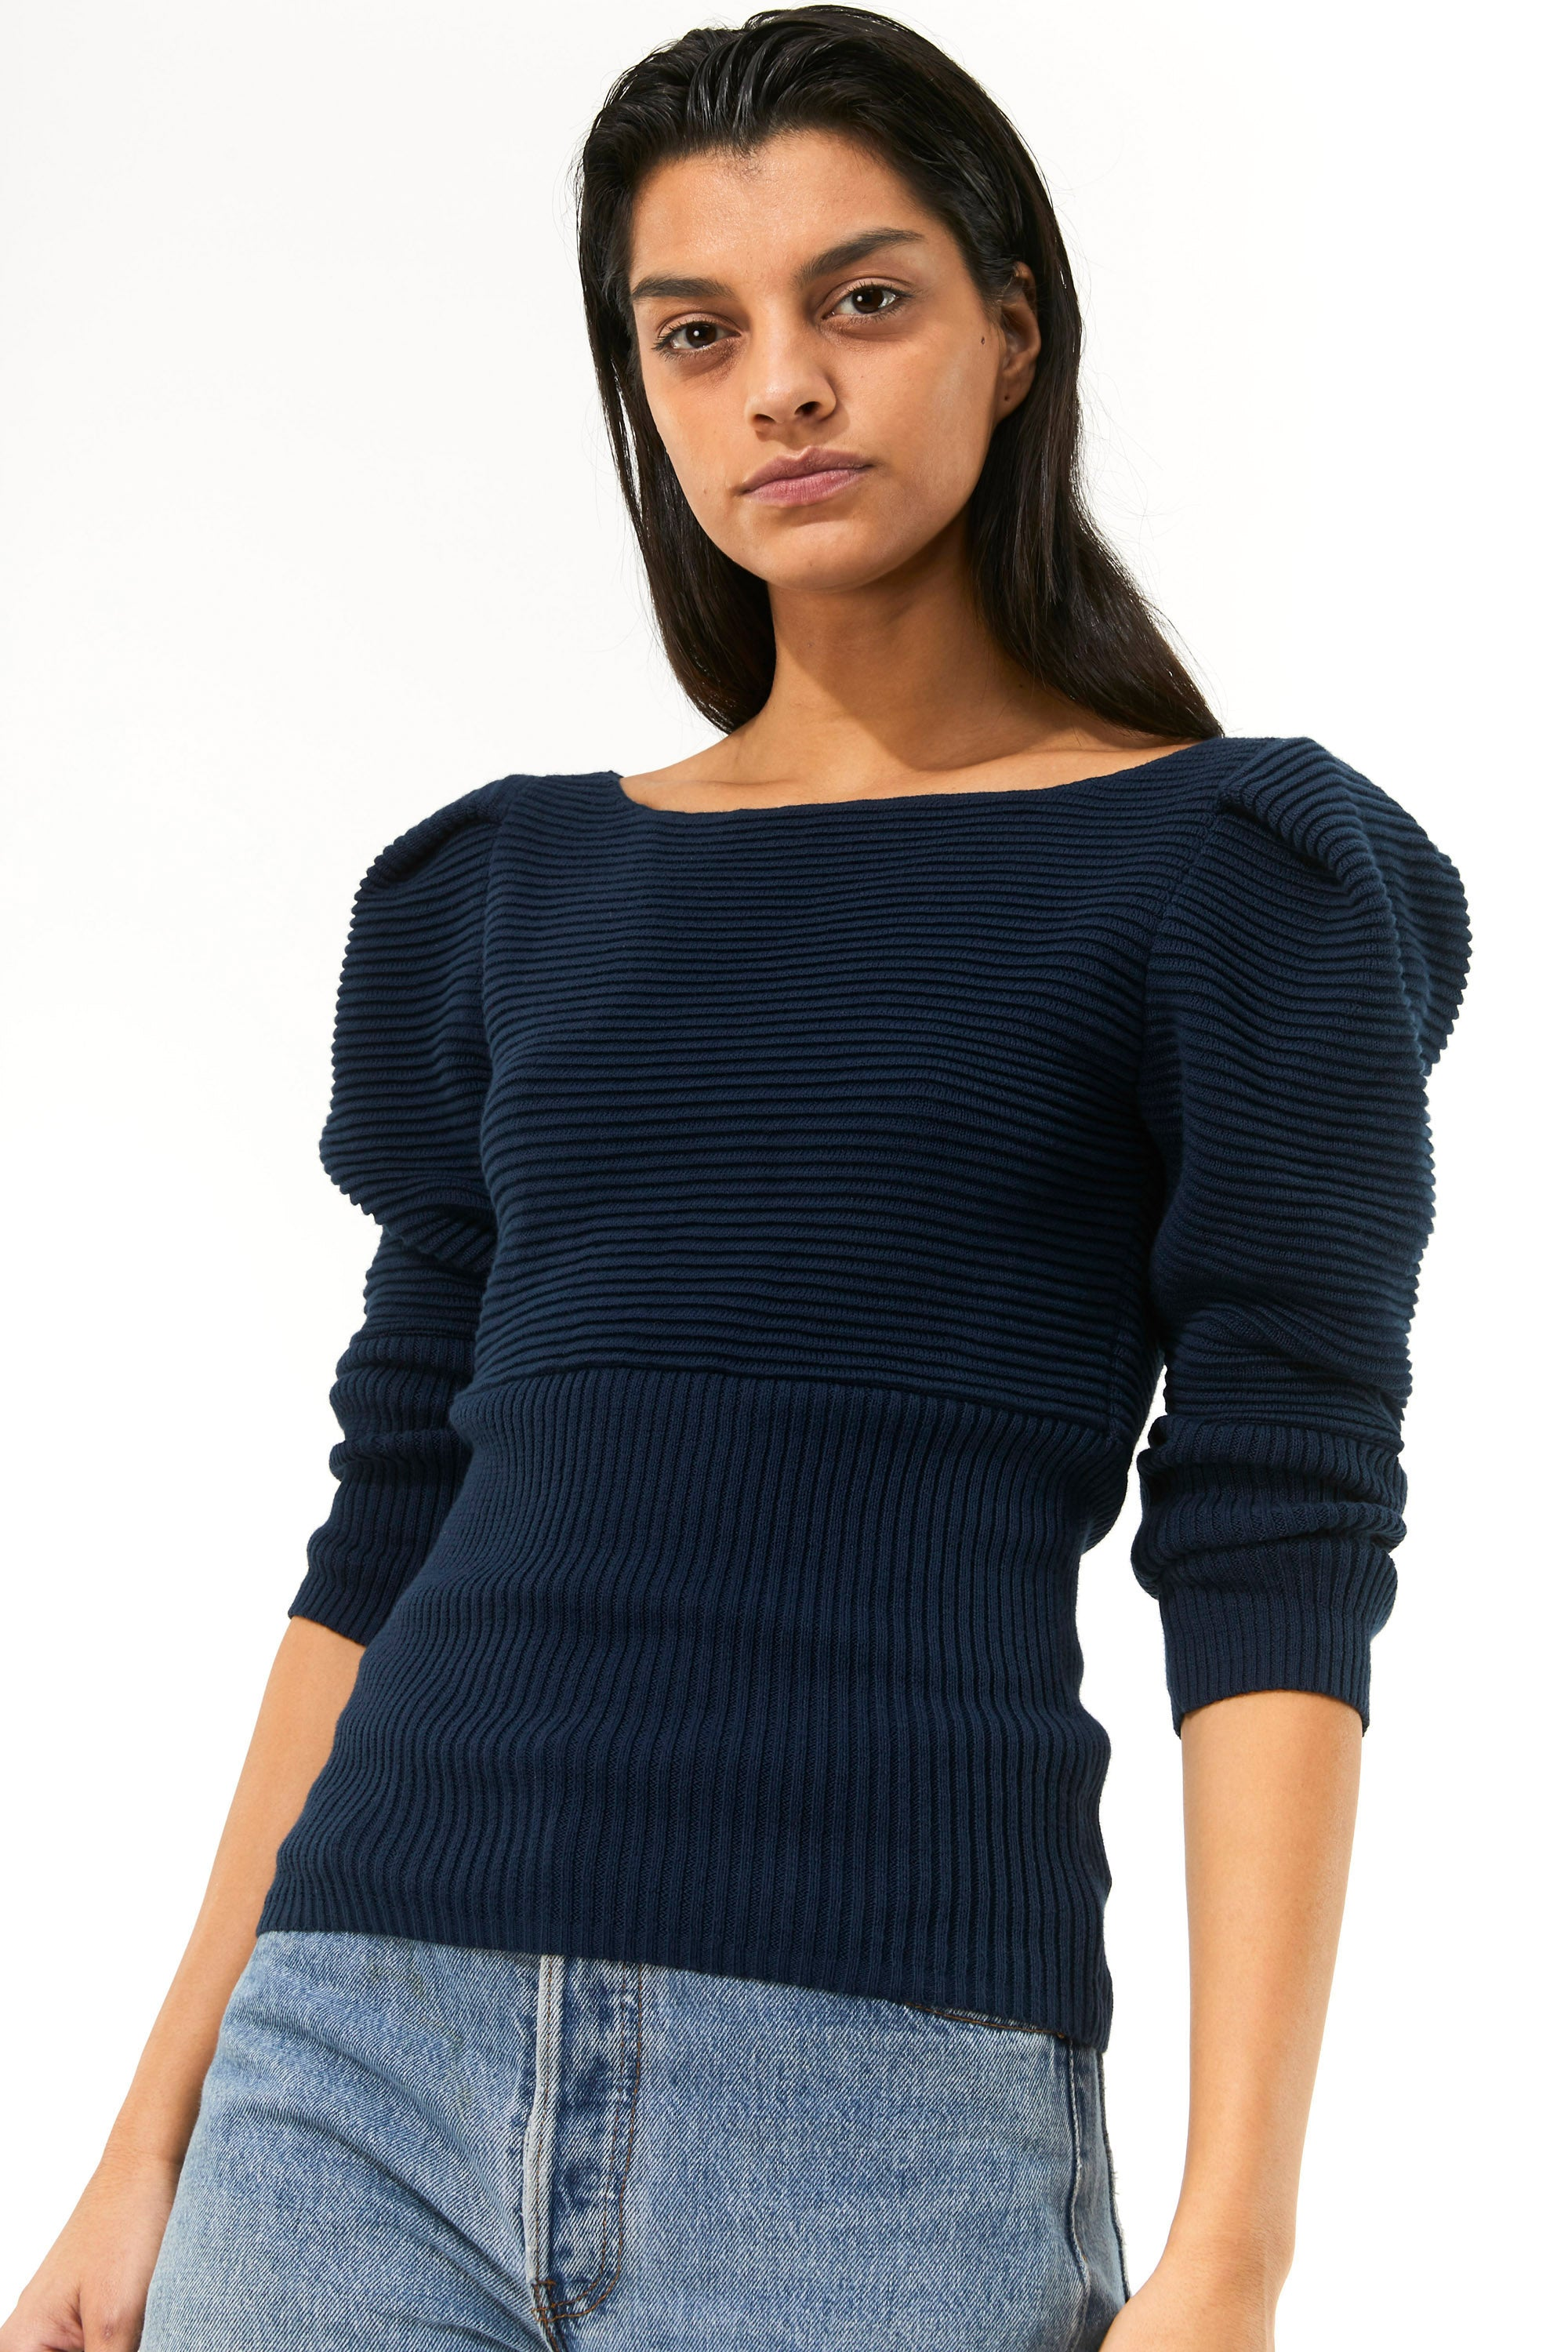 Mara Hoffman Indigo Helena Sweater in organic cotton (front detail)